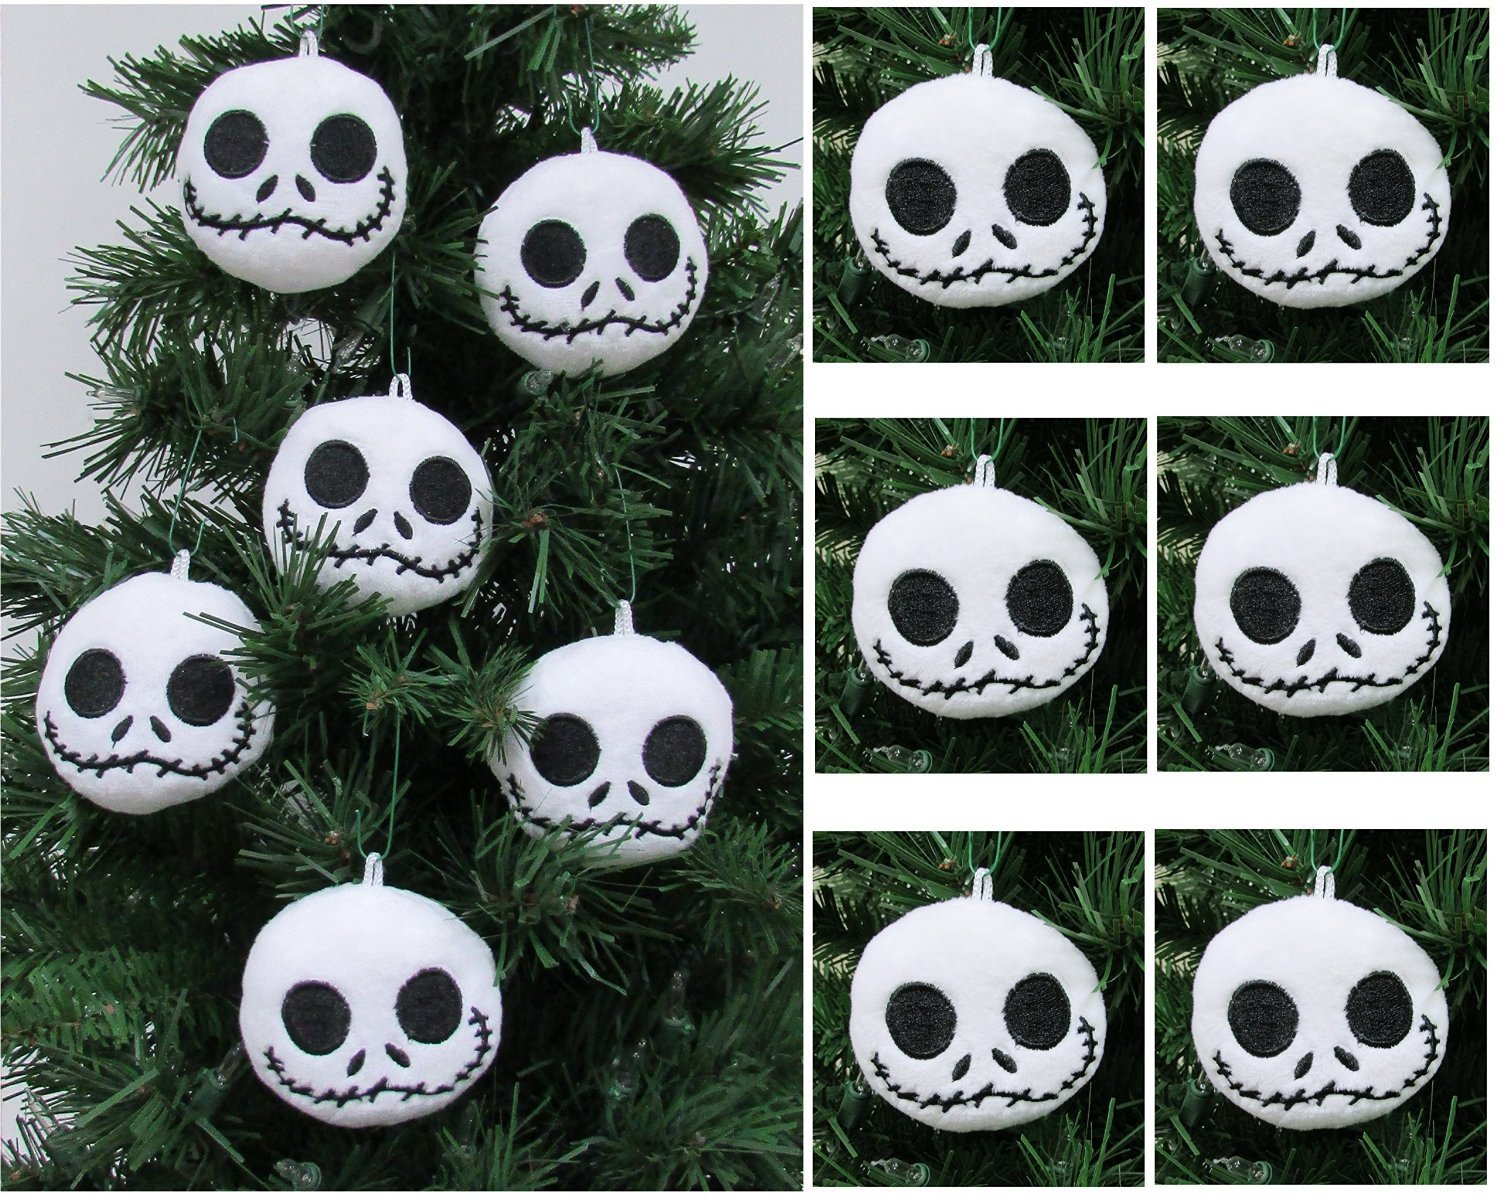 Buy NIGHTMARE BEFORE CHRISTMAS Plush Ornament Set Featuring 6 Jack ...